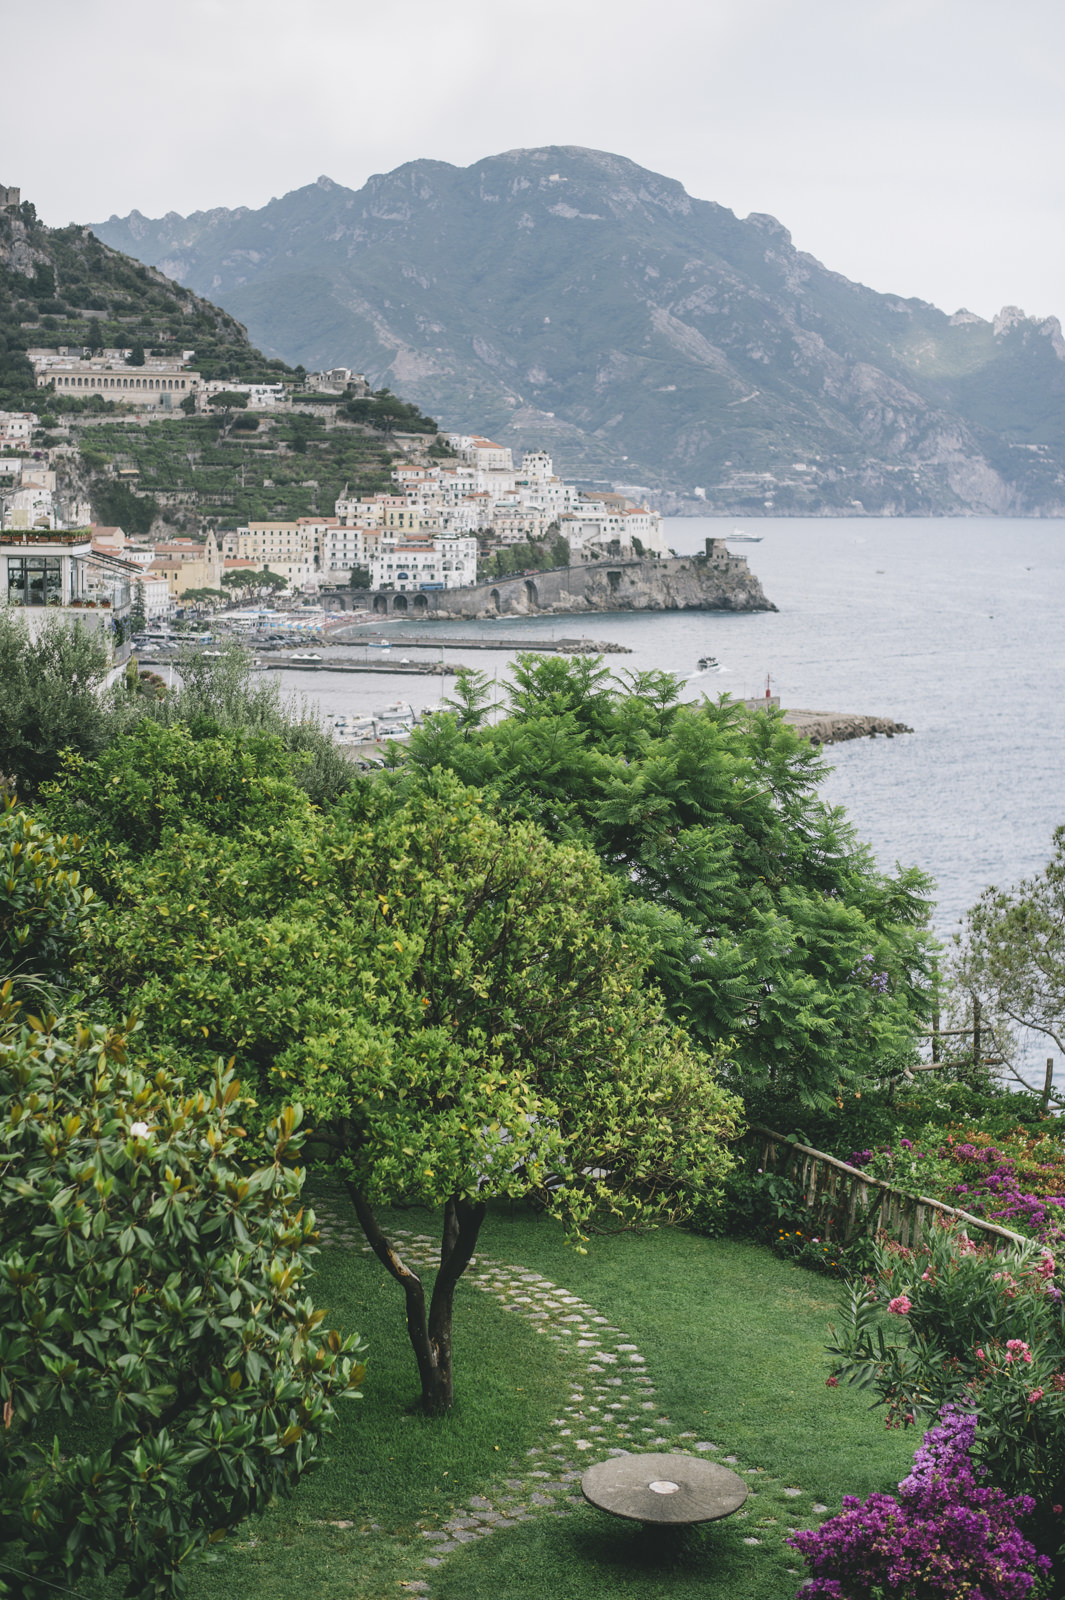 a view of the amalfi coast from the garden of the hotel santa caterina in amalfi